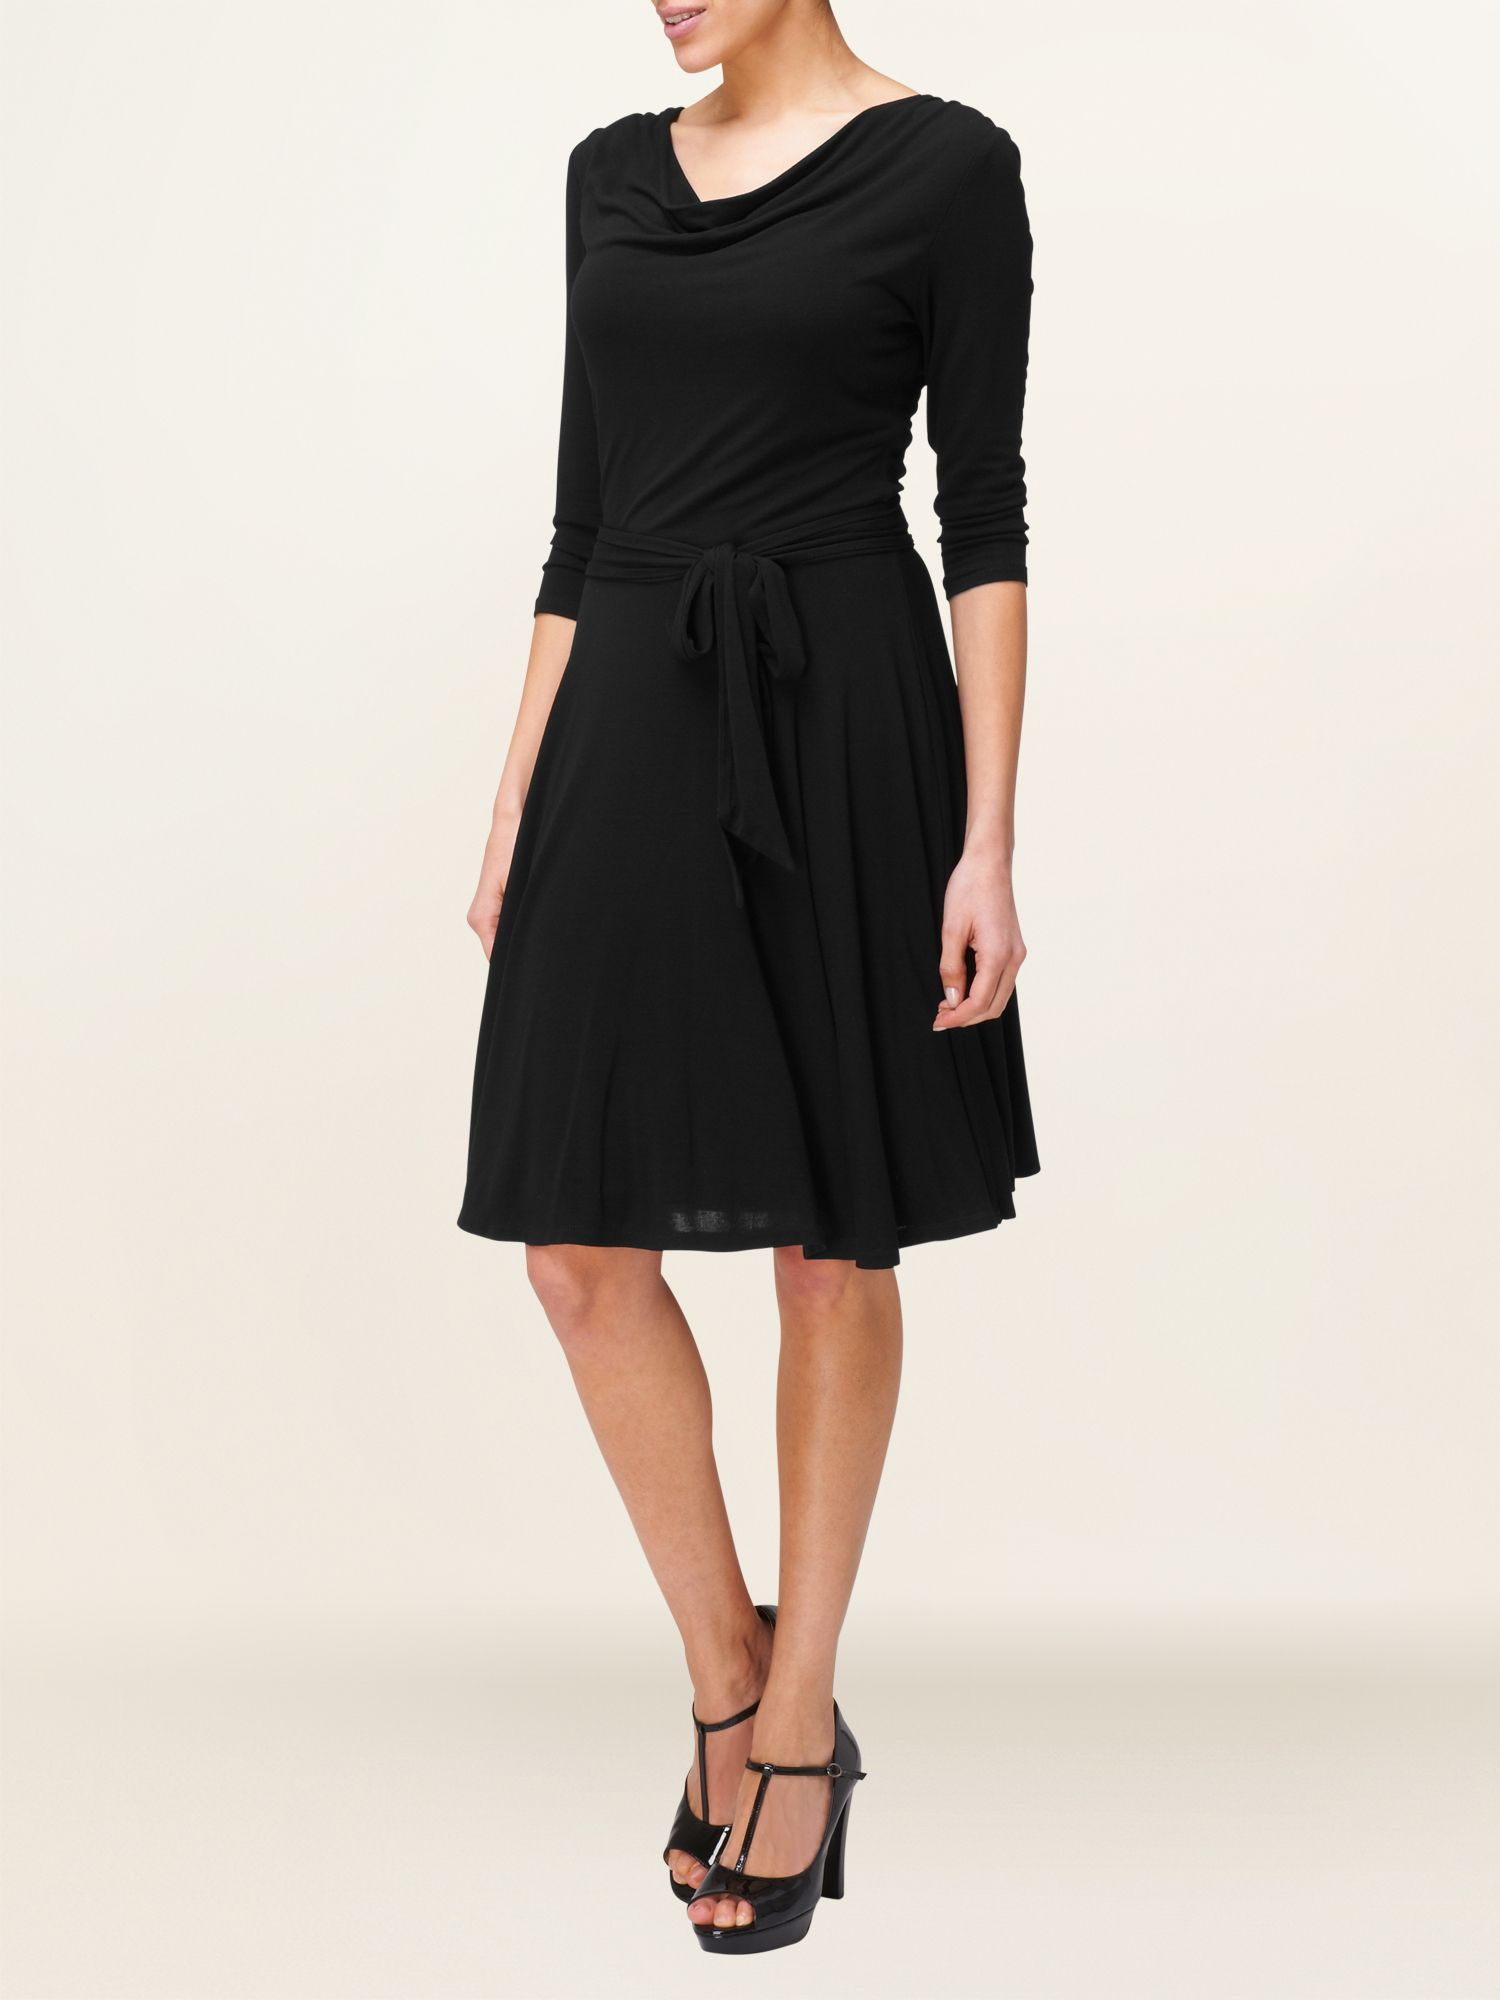 Swing dress with 3/4 sleeve